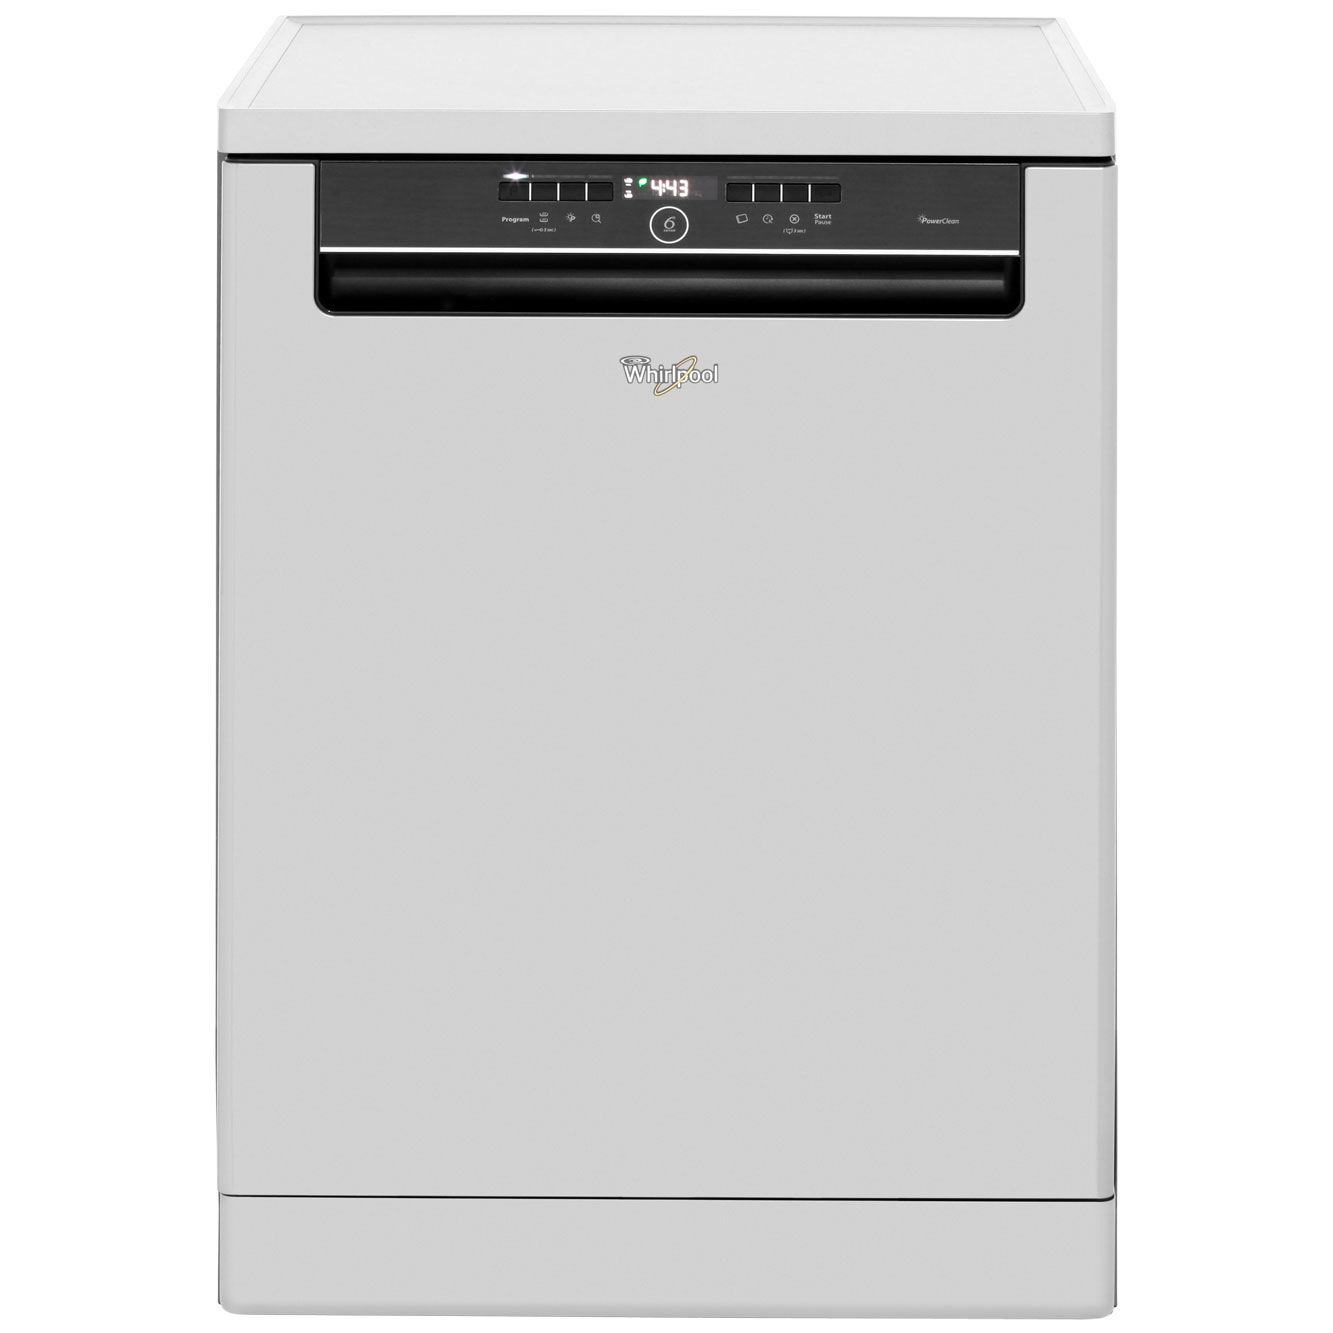 Whirlpool 6th Sense PowerClean ADPL7470IX Standard Dishwasher - Stainless Steel Look